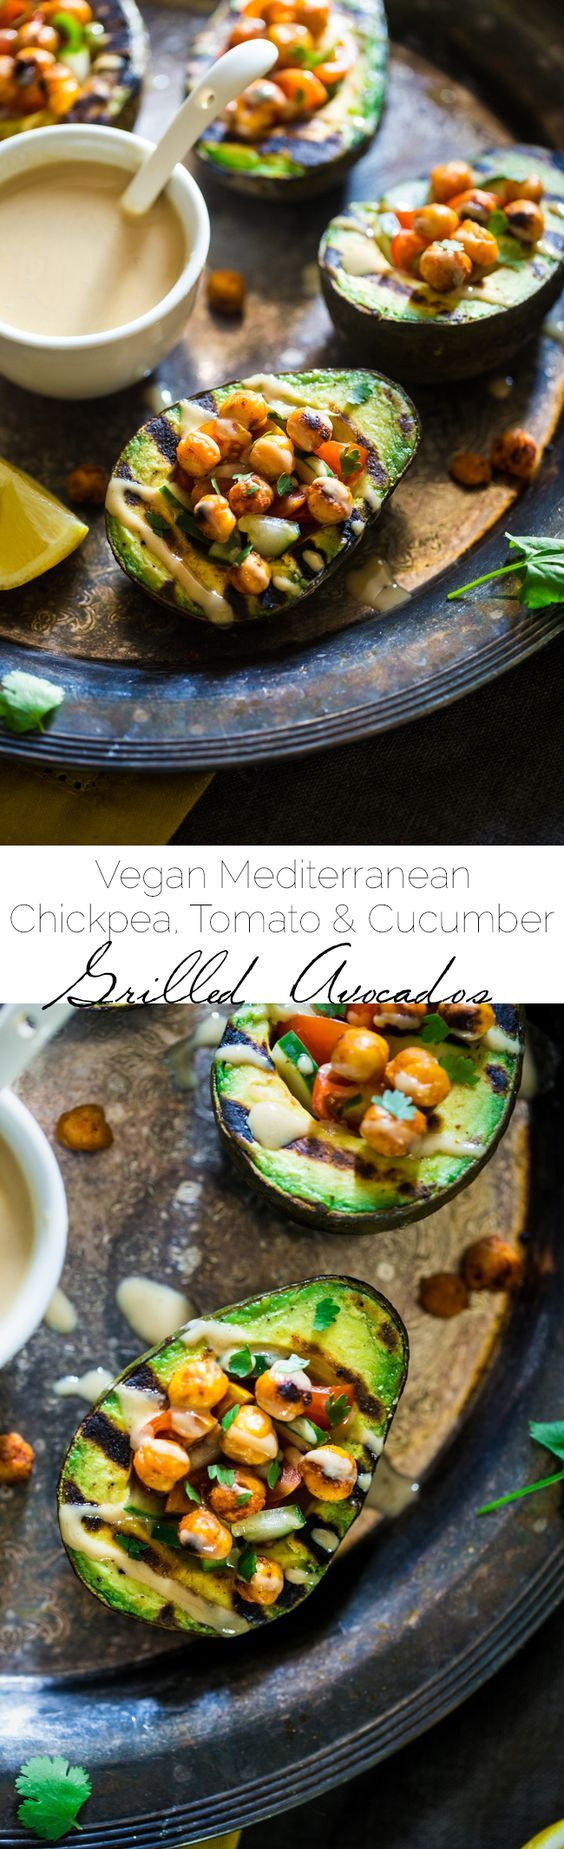 Vegan Mediterranean Chickpea Stuffed Grilled Avocado - Grilled avocado is stuffed with fresh cucumber, tomato and crispy grilled chickpeas! A drizzle of tahini makes this a delicious, healthy and easy, vegan dinner for under 250 calories! | Foodfaithfitness.com | @Taylor | Food Faith Fitness